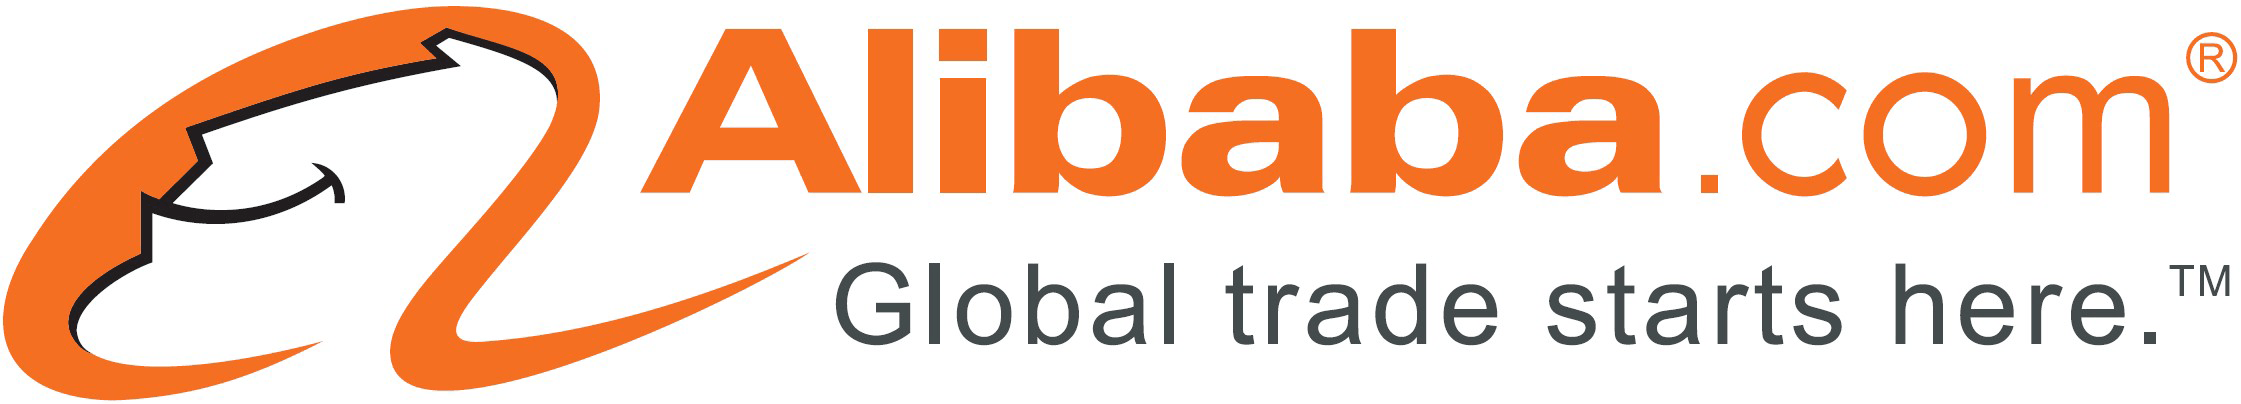 Alibaba Logo Logodix By downloading the alibaba group logo from logo.wine you hereby acknowledge that you agree to these terms of use and that the artwork you download could include technical, typographical. alibaba logo logodix